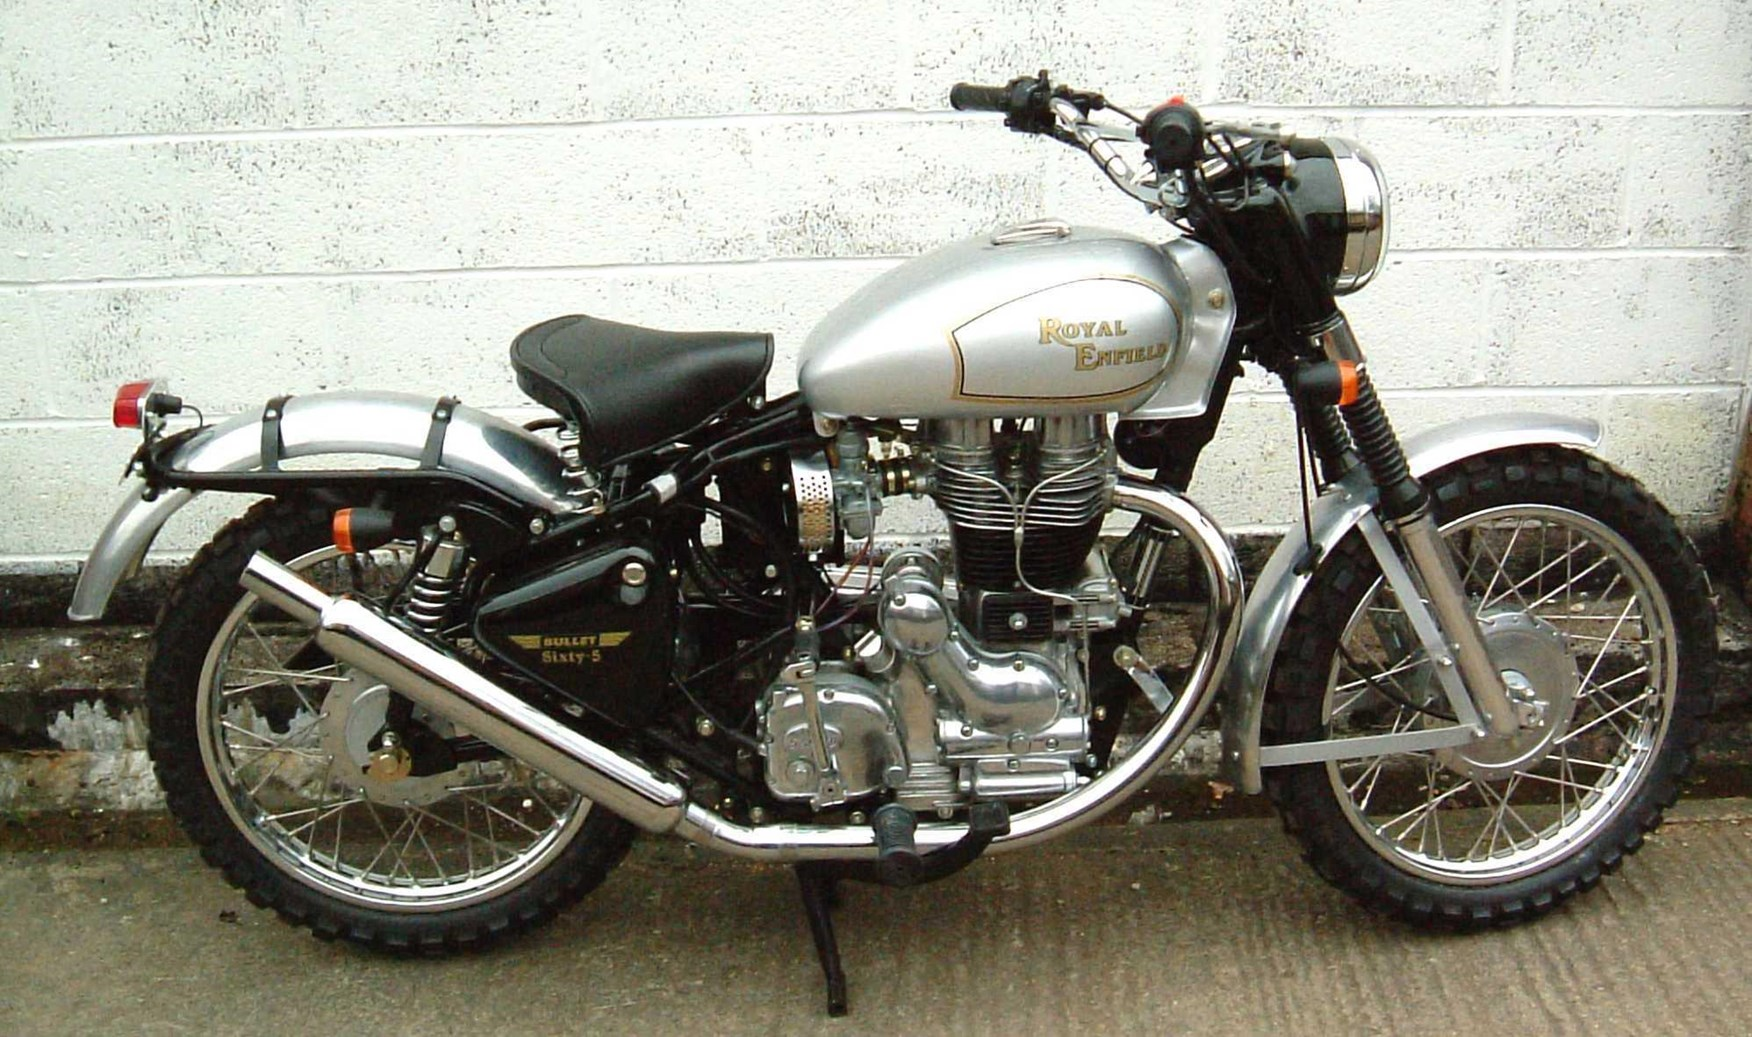 Royal Enfield Bullet 500 Trial Trail 2003 images #123209